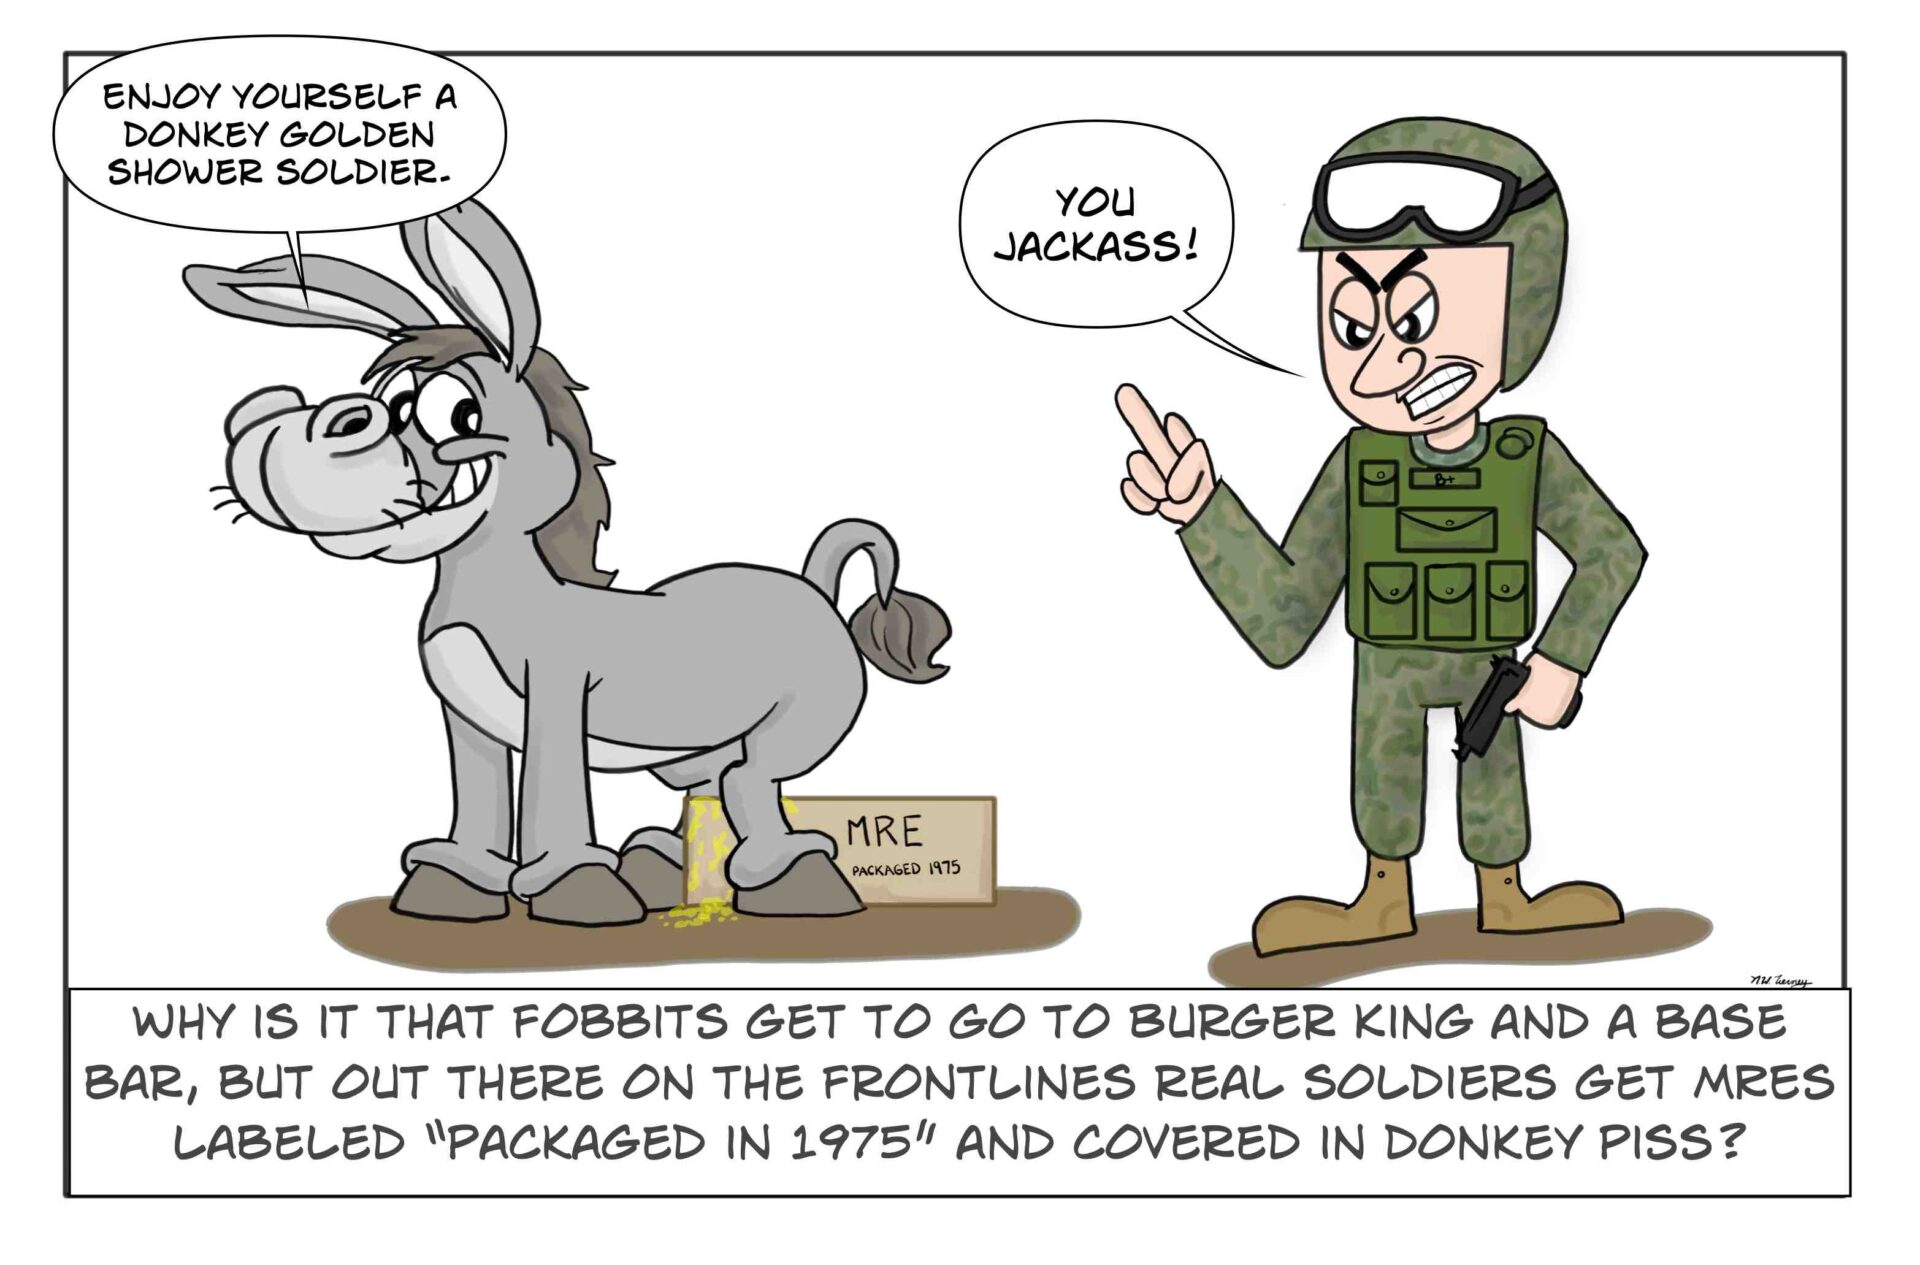 An Army FOBBIT vs. the frontlines soldier has many more perks and food choices.